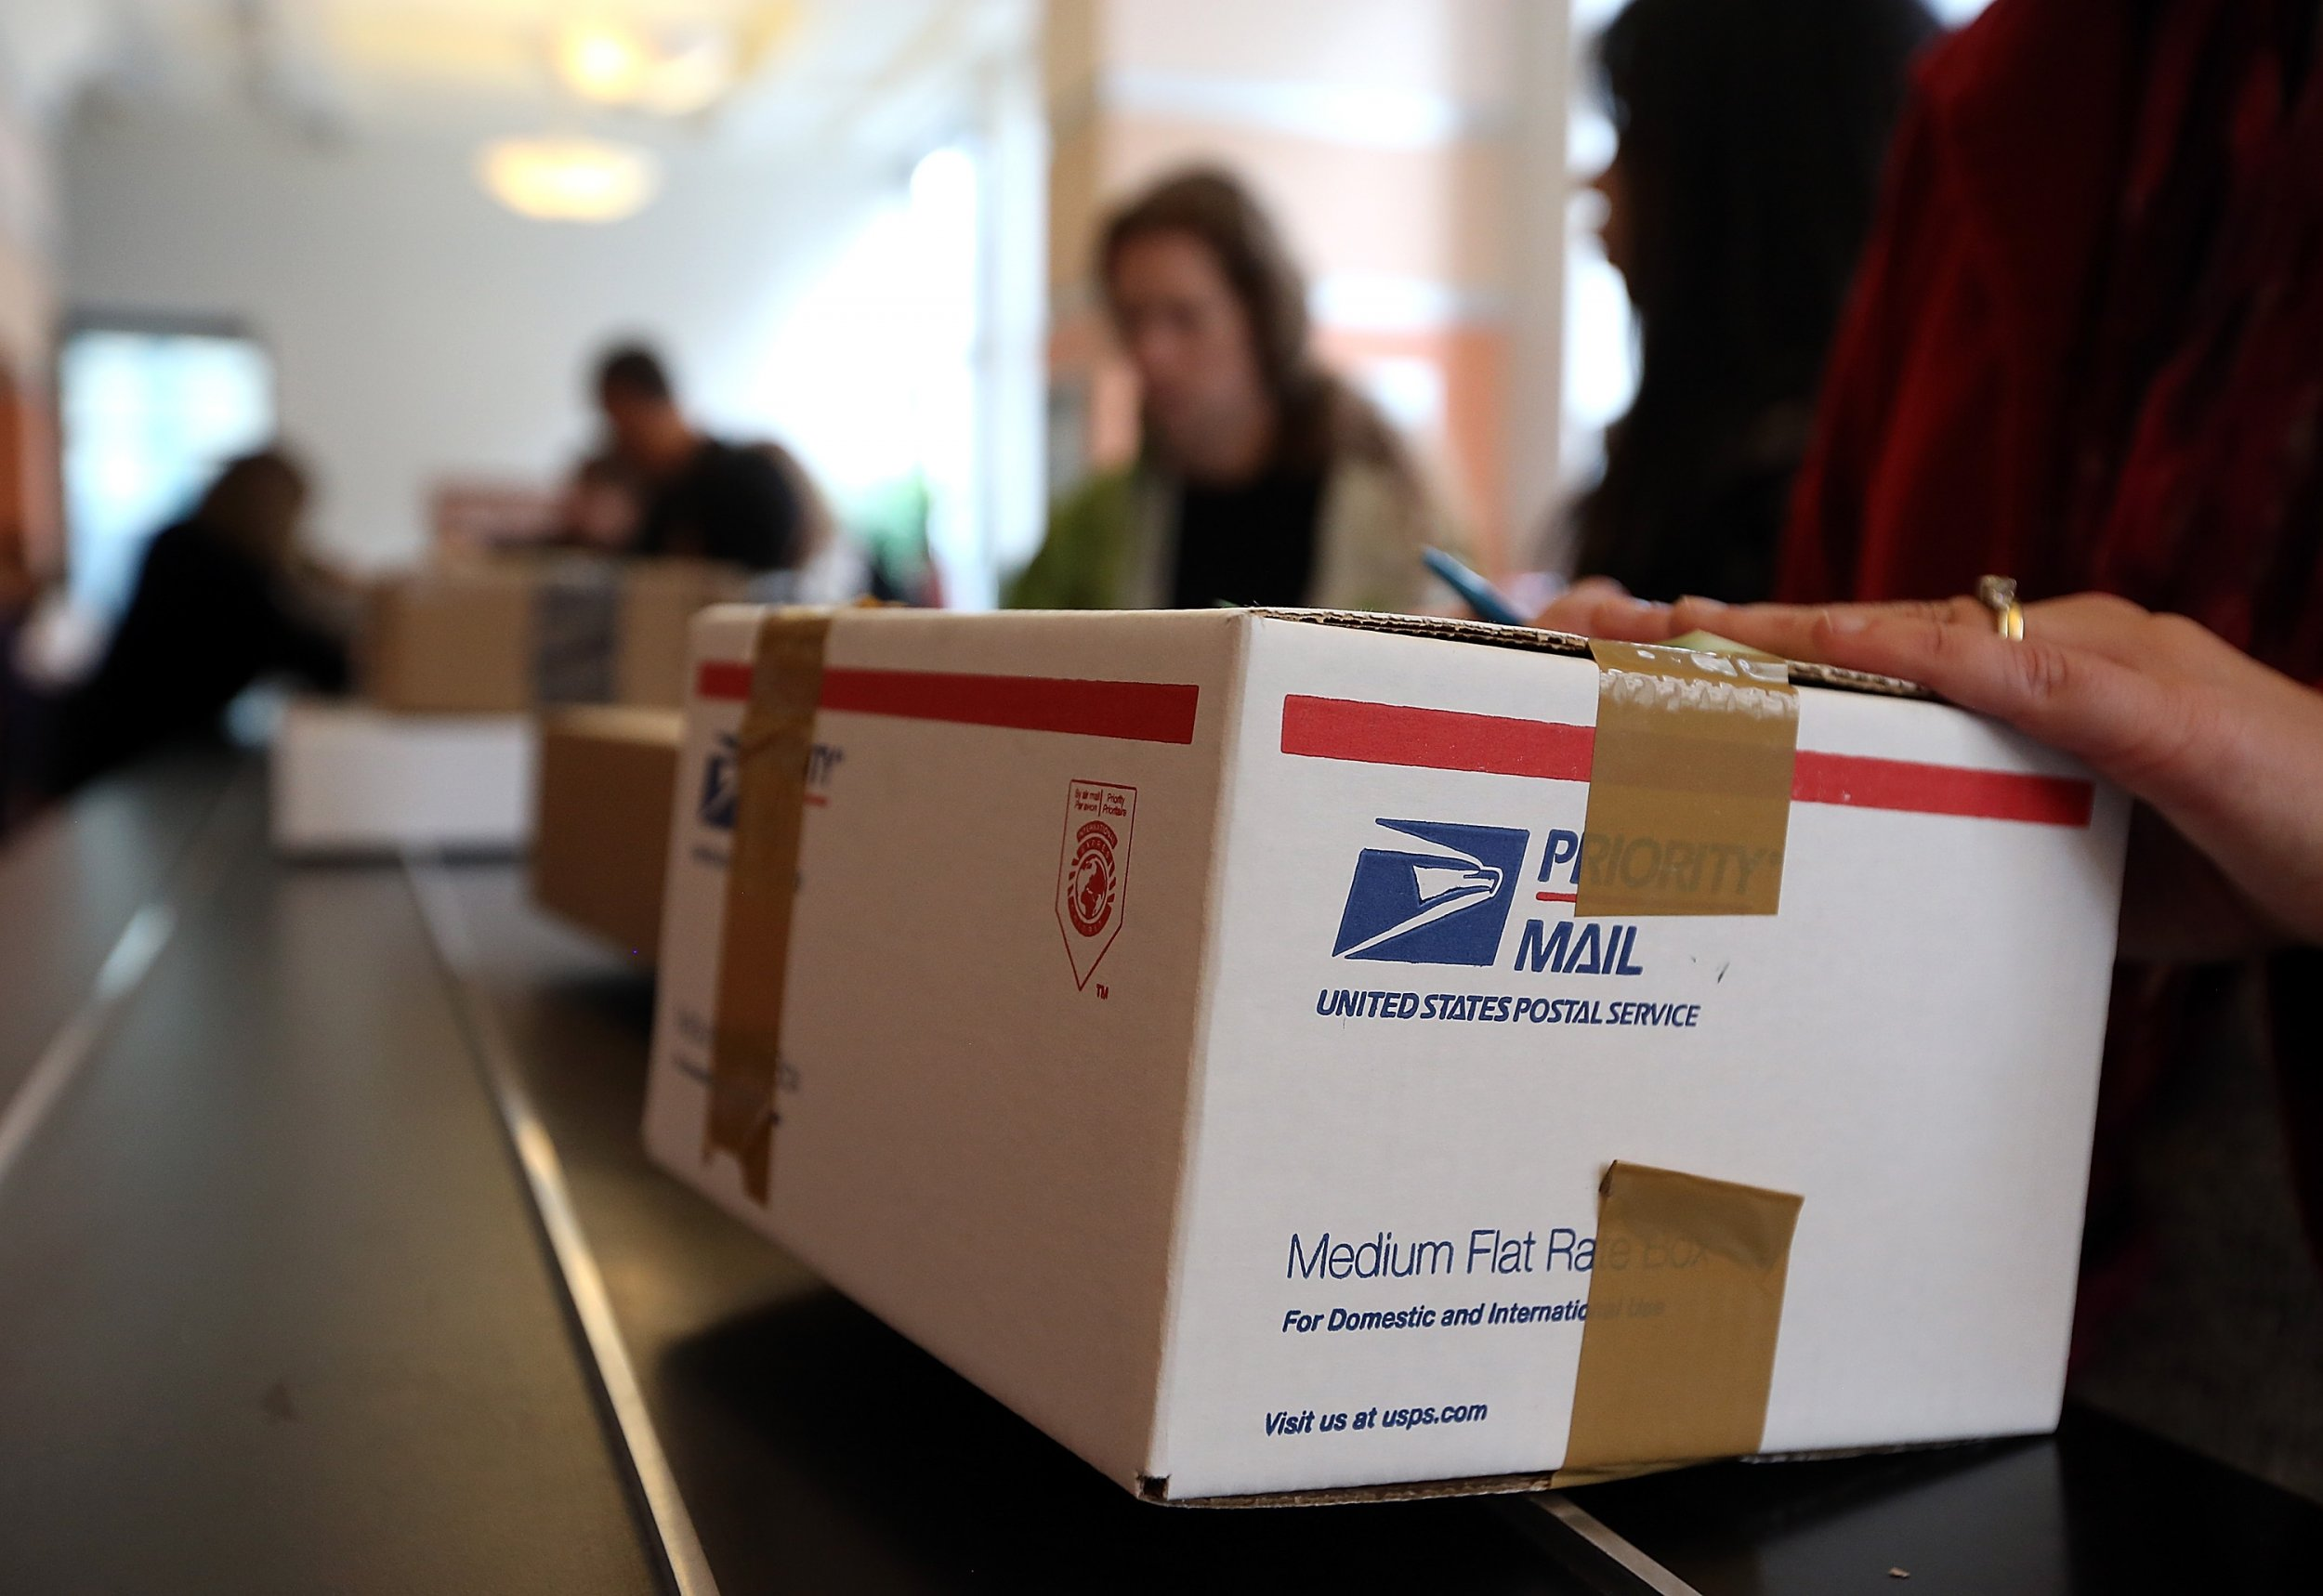 Does the Mail Run, Get Delivered on New Year's Eve, New Year's Day